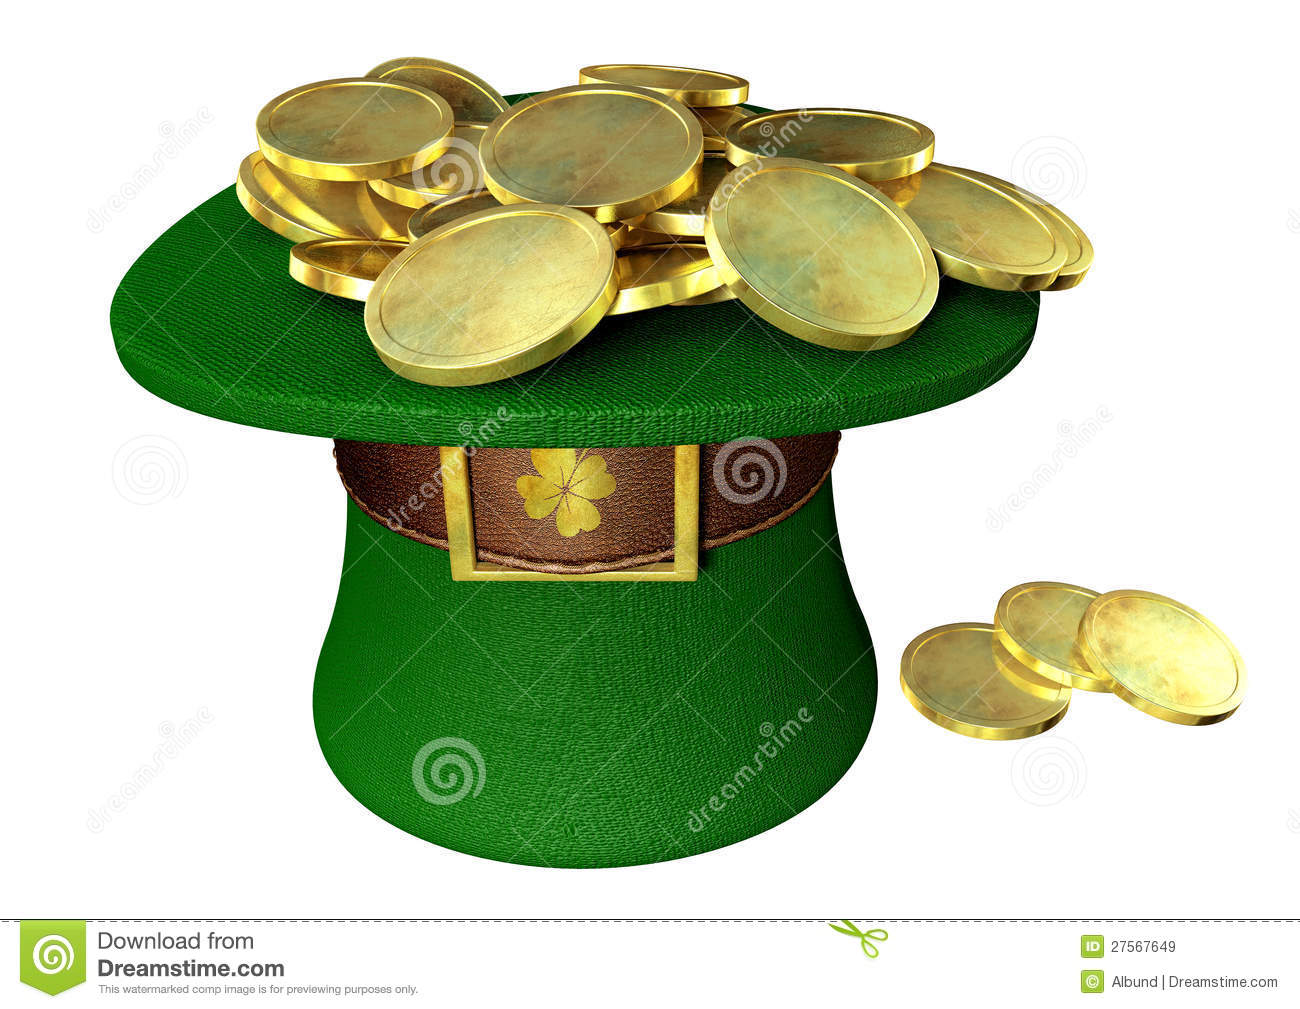 Green Leprechaun Hat Filled With Gold Coins Royalty Free ...